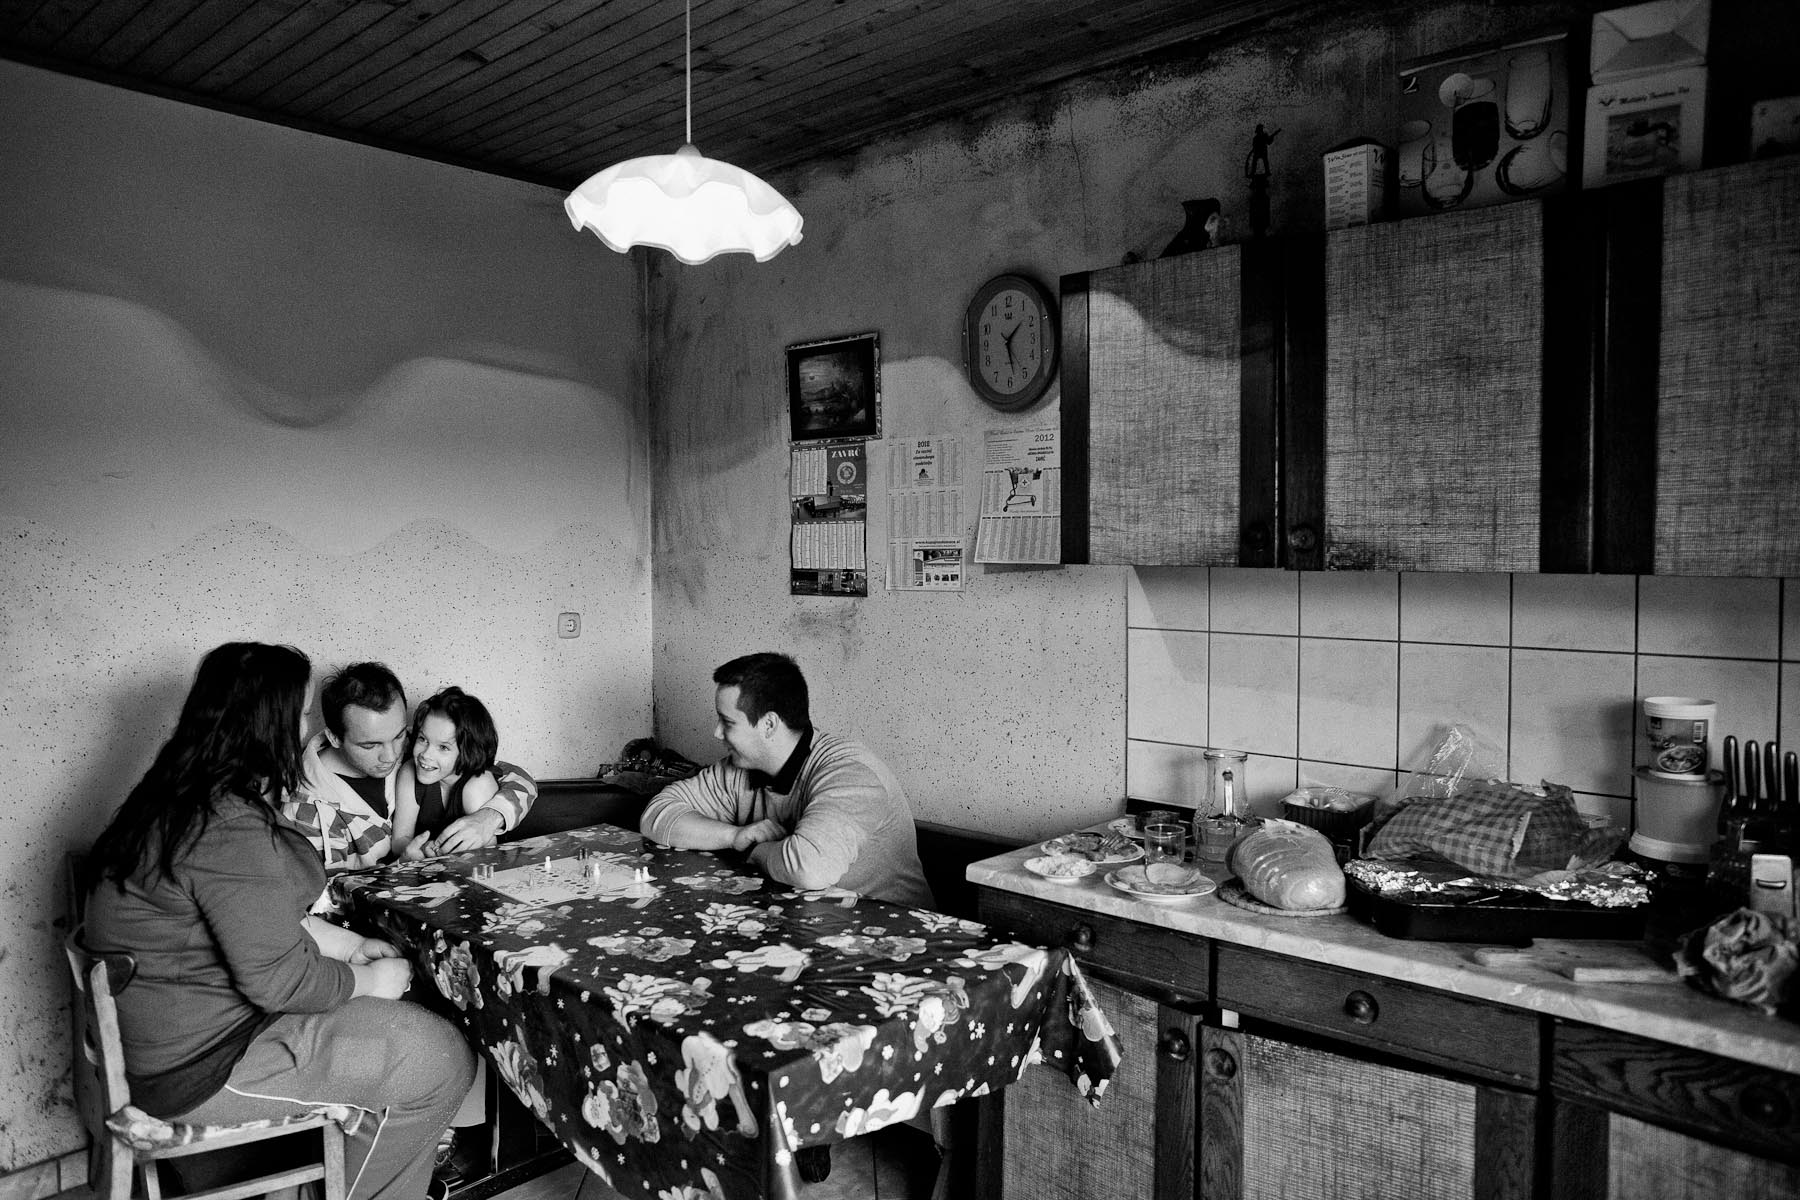 Barbara, her brother Andrej and Martin and her sister Petra play a board game in the kitchen of their home in Zavrc, Slovenia, April 7, 2012.